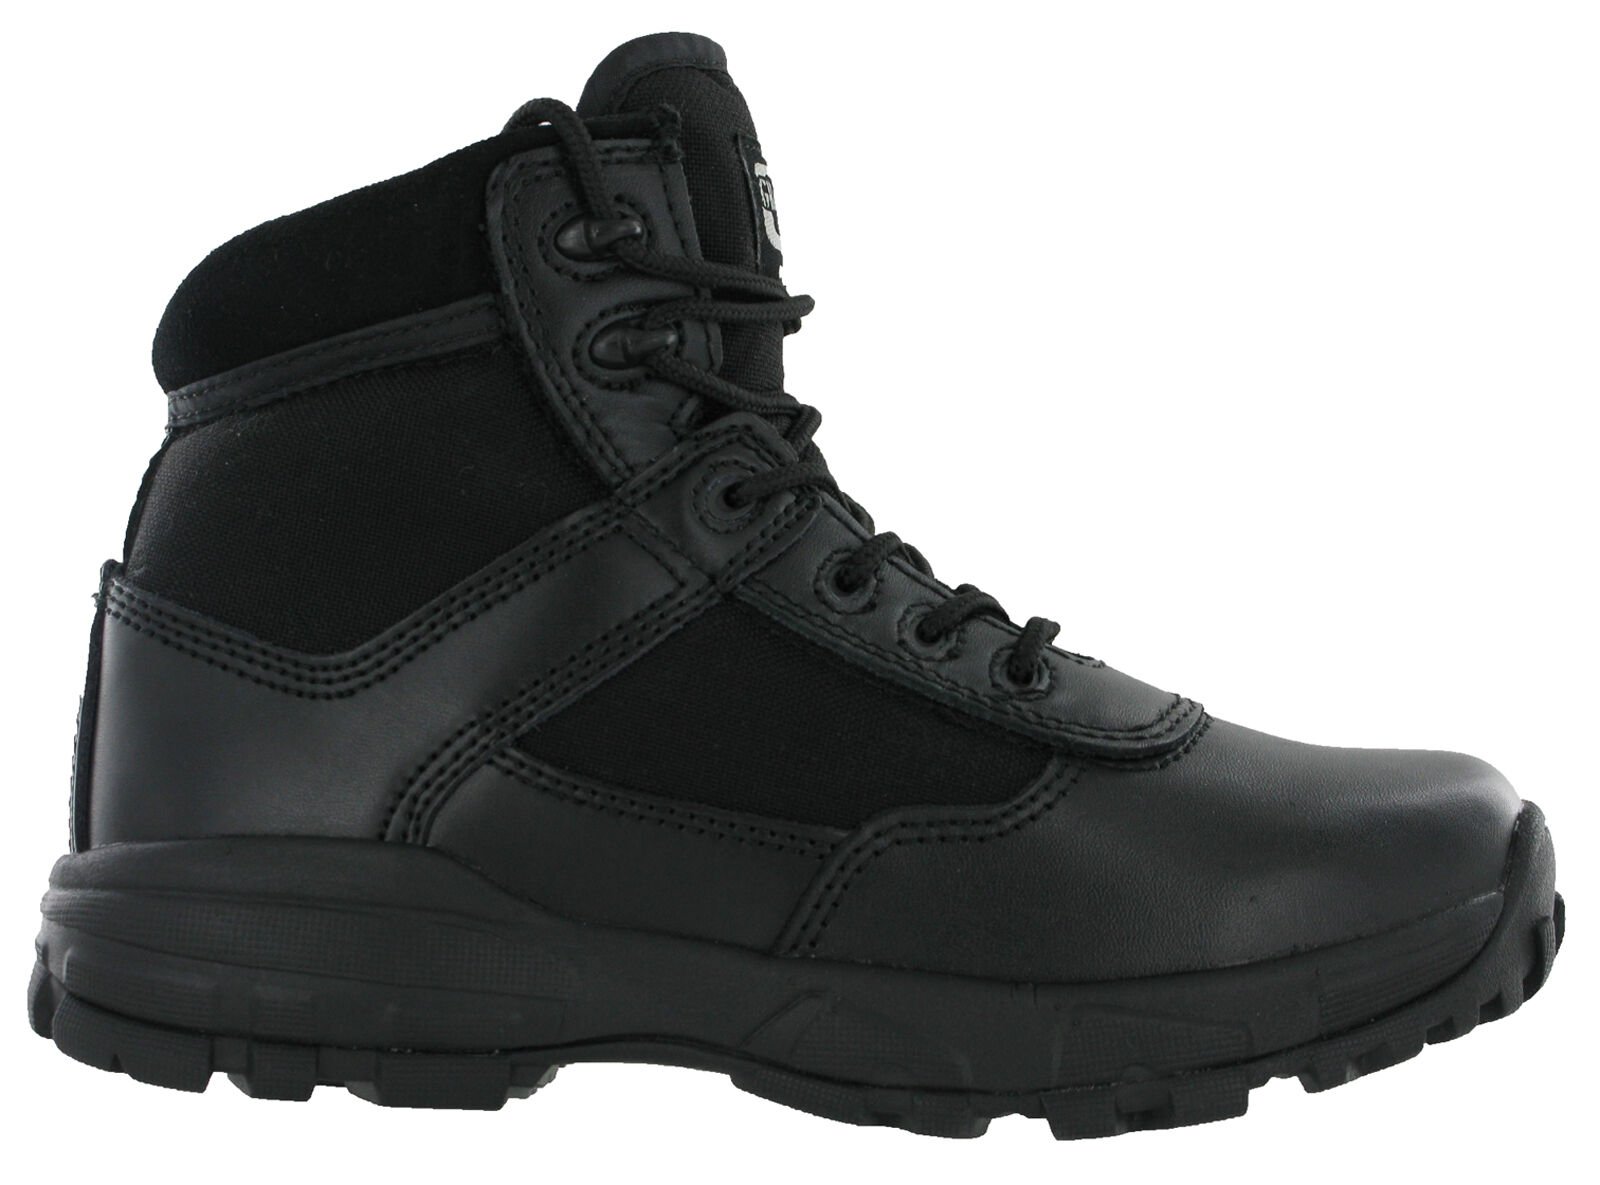 Grafters Combat Combat Combat Boots Non Metal Military Ankle Leather Lightweight Lace Womens bd6cfc